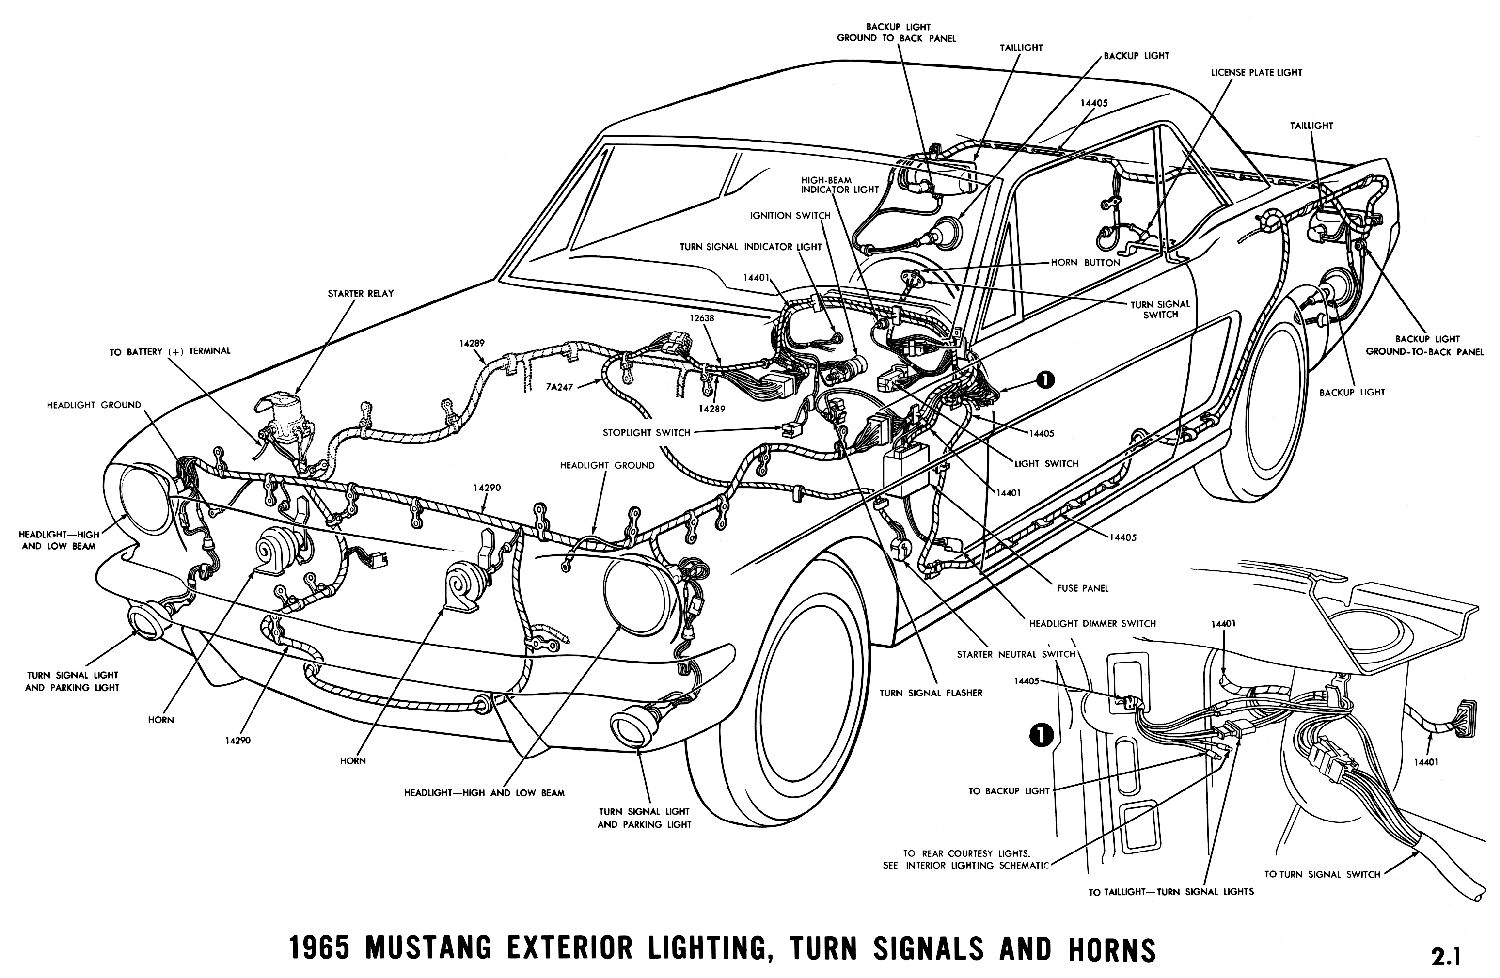 1965d 1965 mustang wiring diagrams average joe restoration 1965 mustang alternator wiring diagram at aneh.co